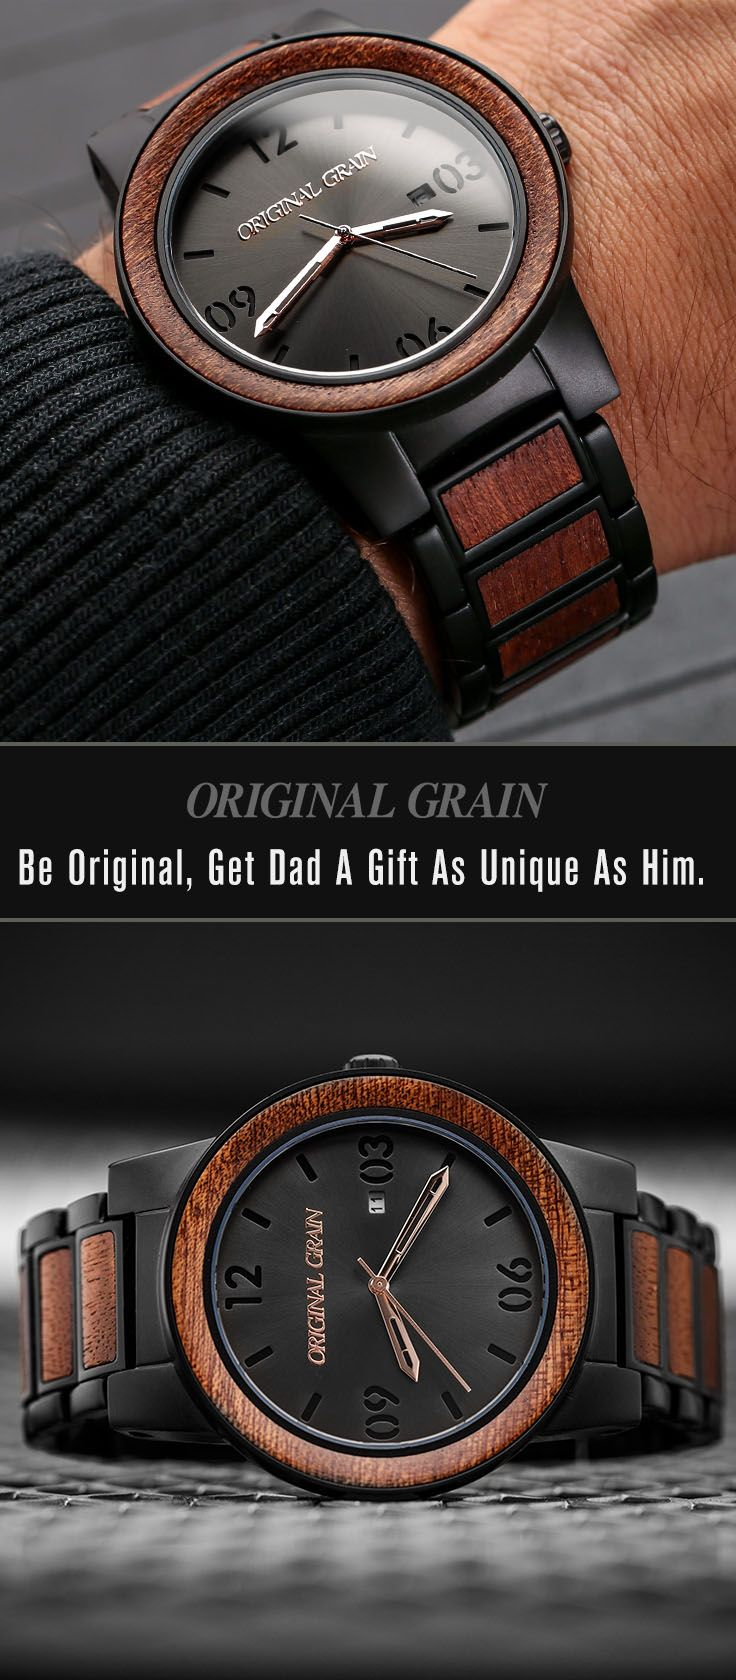 Looking for the perfect gift for Dad? Our one-of-a-kind watches are made with the perfect combination of exotic wood and stainless steel. Get him something truly original this year - Free shipping worldwide!